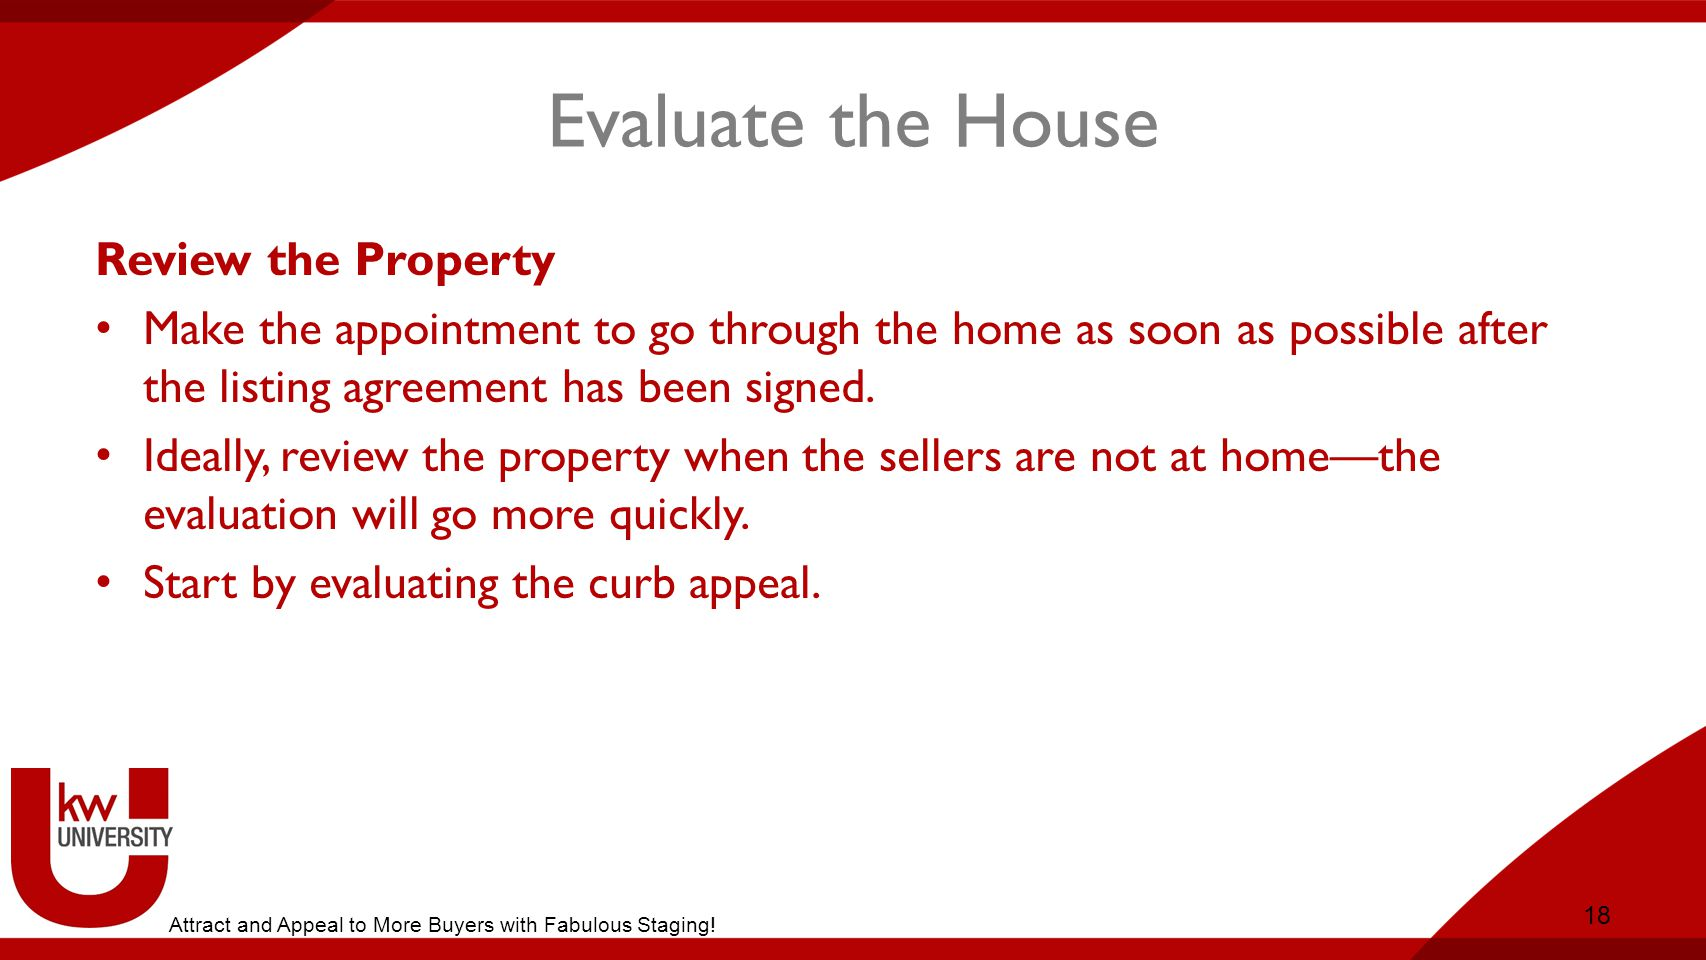 Evaluate the House Review the Property Make the appointment to go through the home as soon as possible after the listing agreement has been signed.